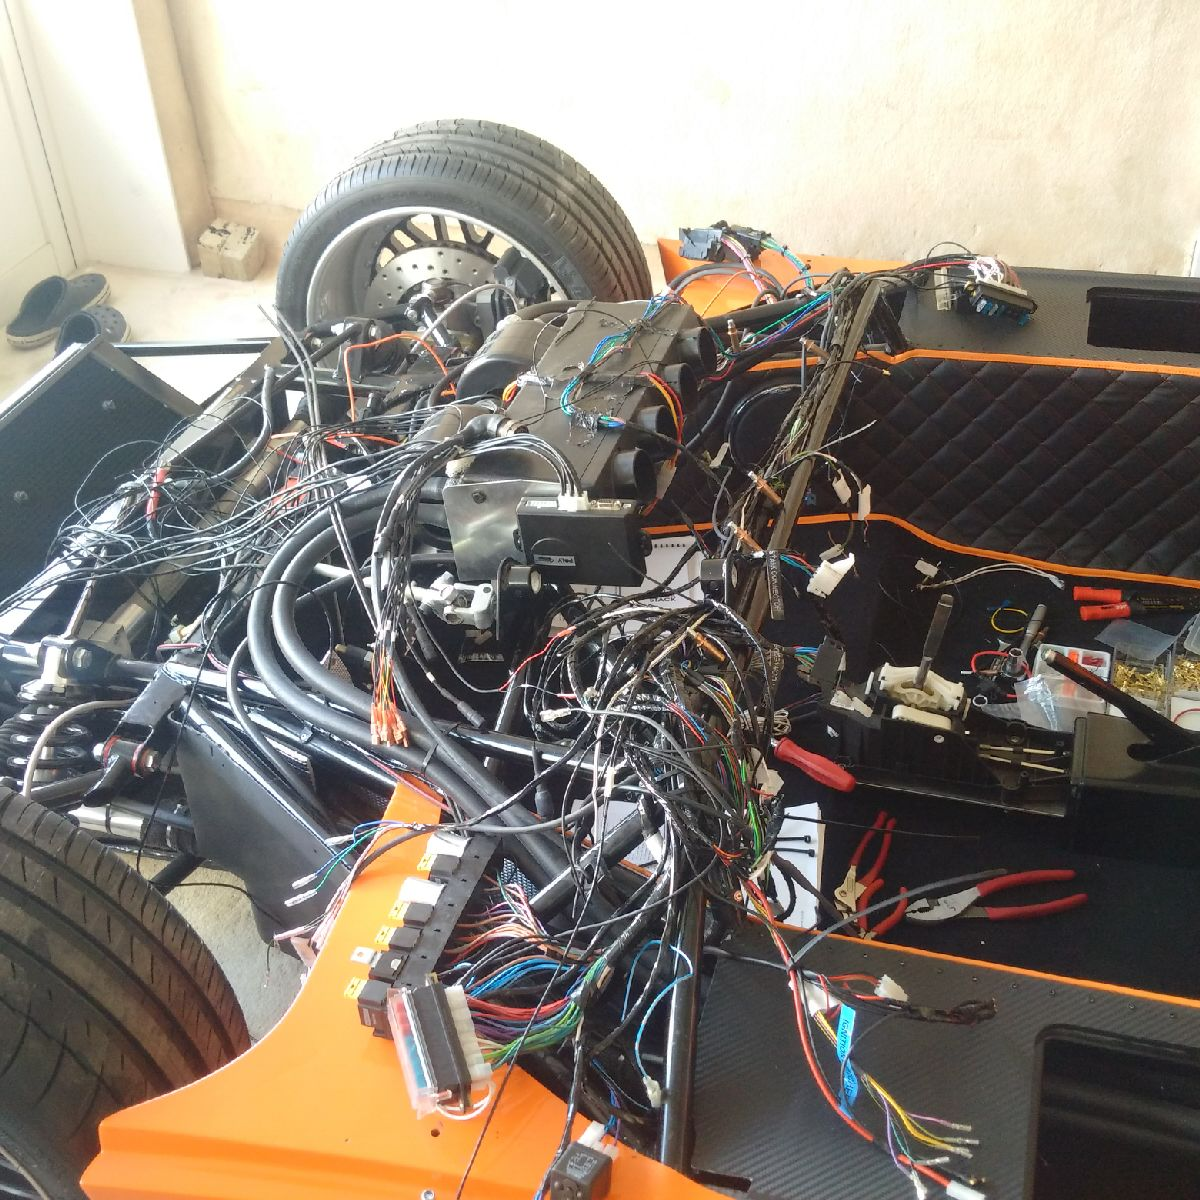 Huzis Ultima Evolution Build Motor Wiring Diagram Also Remaining Will Be To Cable Tie Zip And P Clip All The Wires Running Across Dash Chassis Rails At Proper Intervals